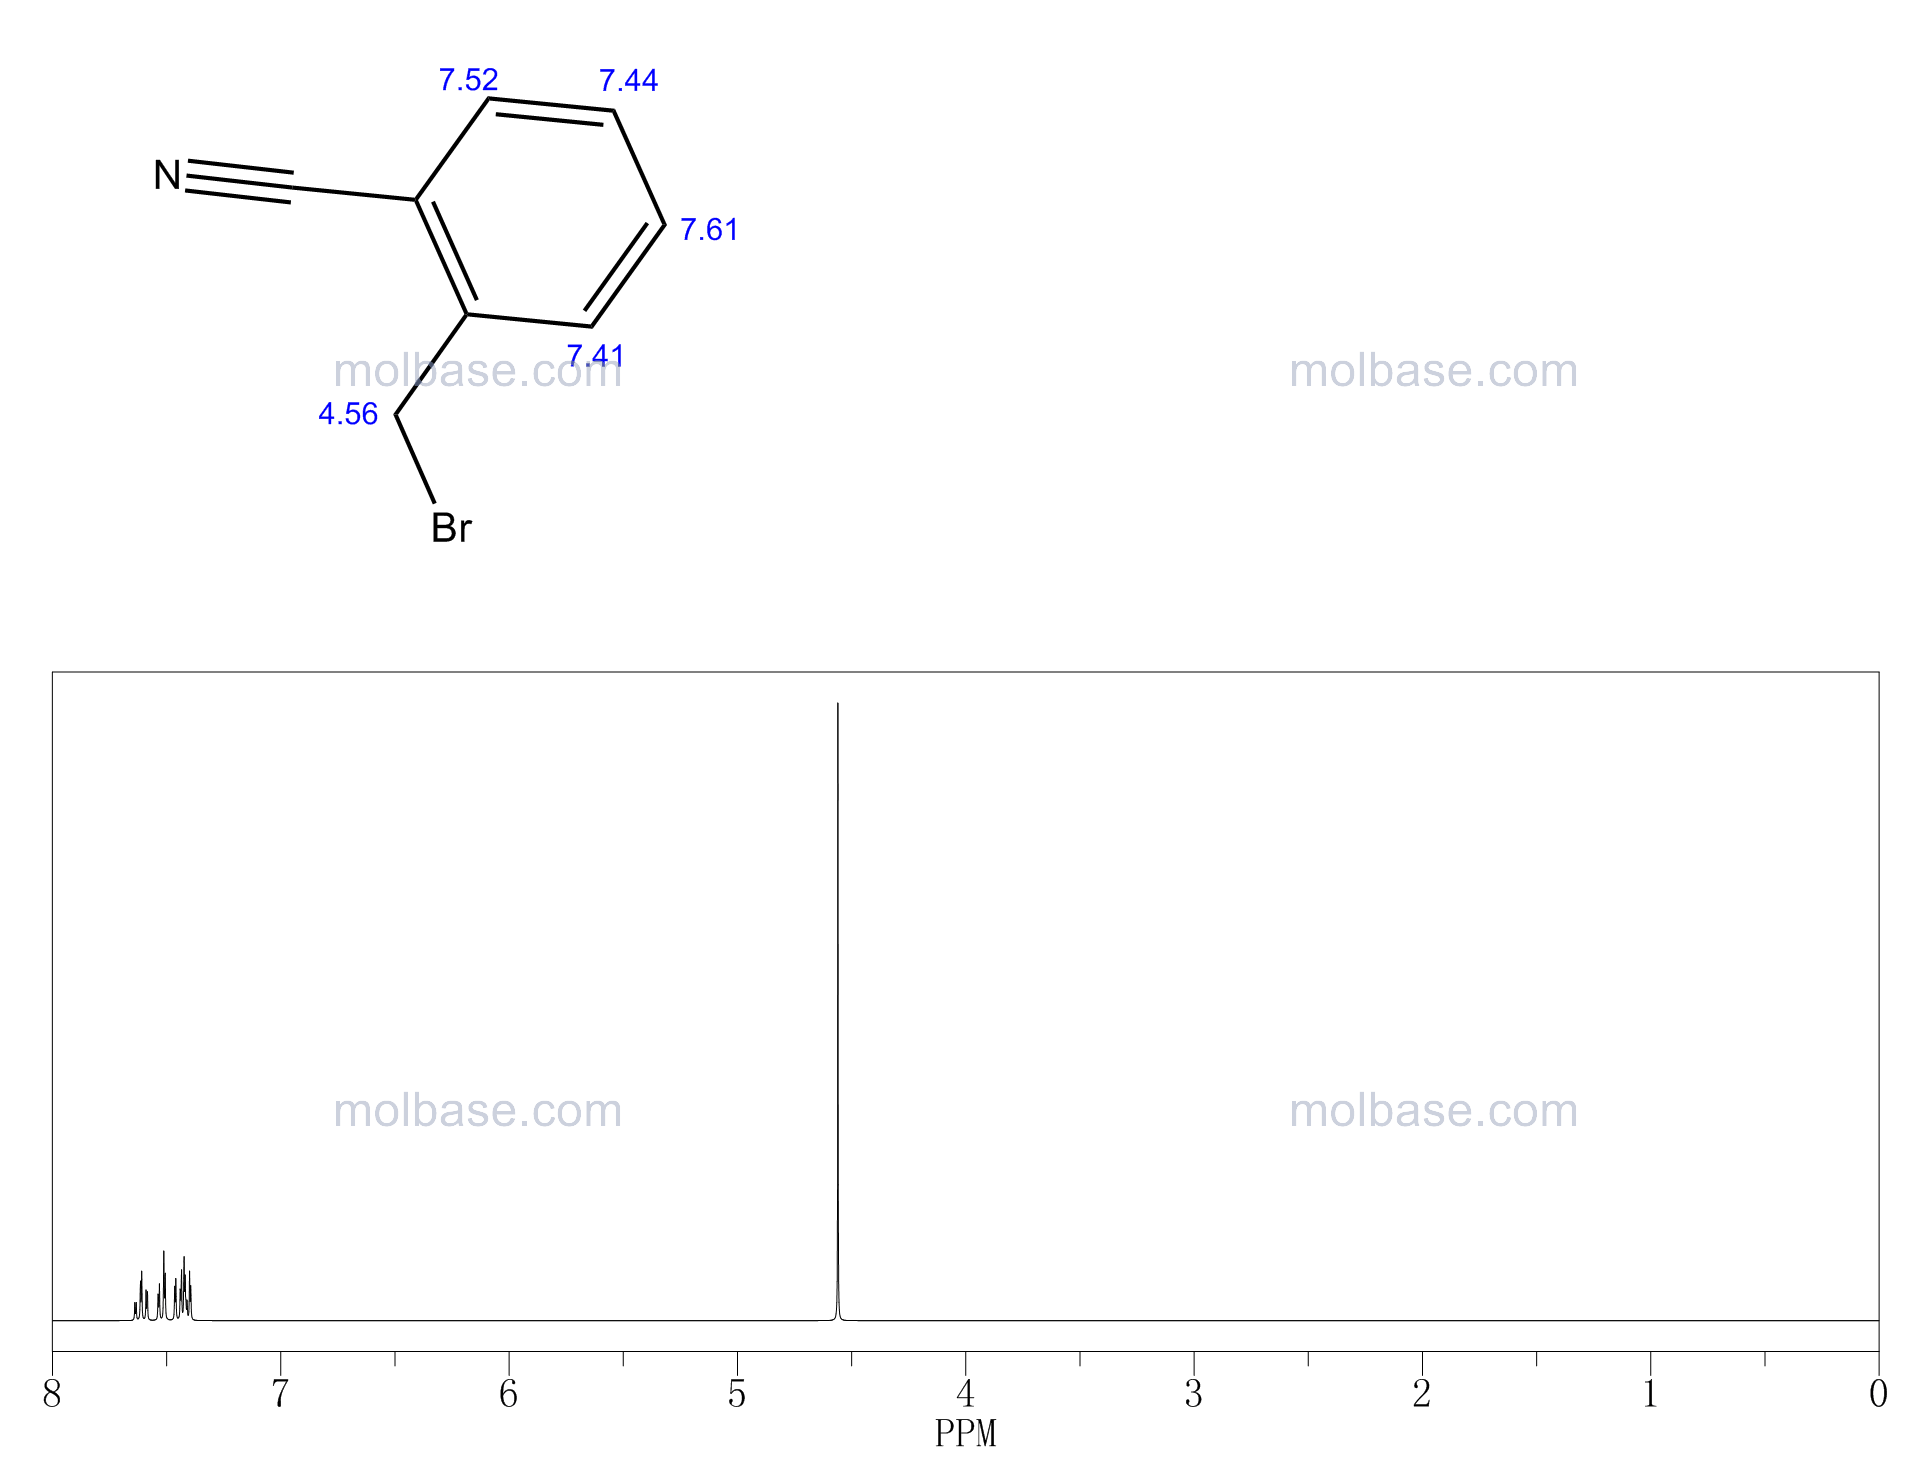 2-Cyanobenzyl bromide NMR spectra analysis, Chemical CAS NO. 22115-41-9 NMR spectral analysis, 2-Cyanobenzyl bromide C-NMR spectrum